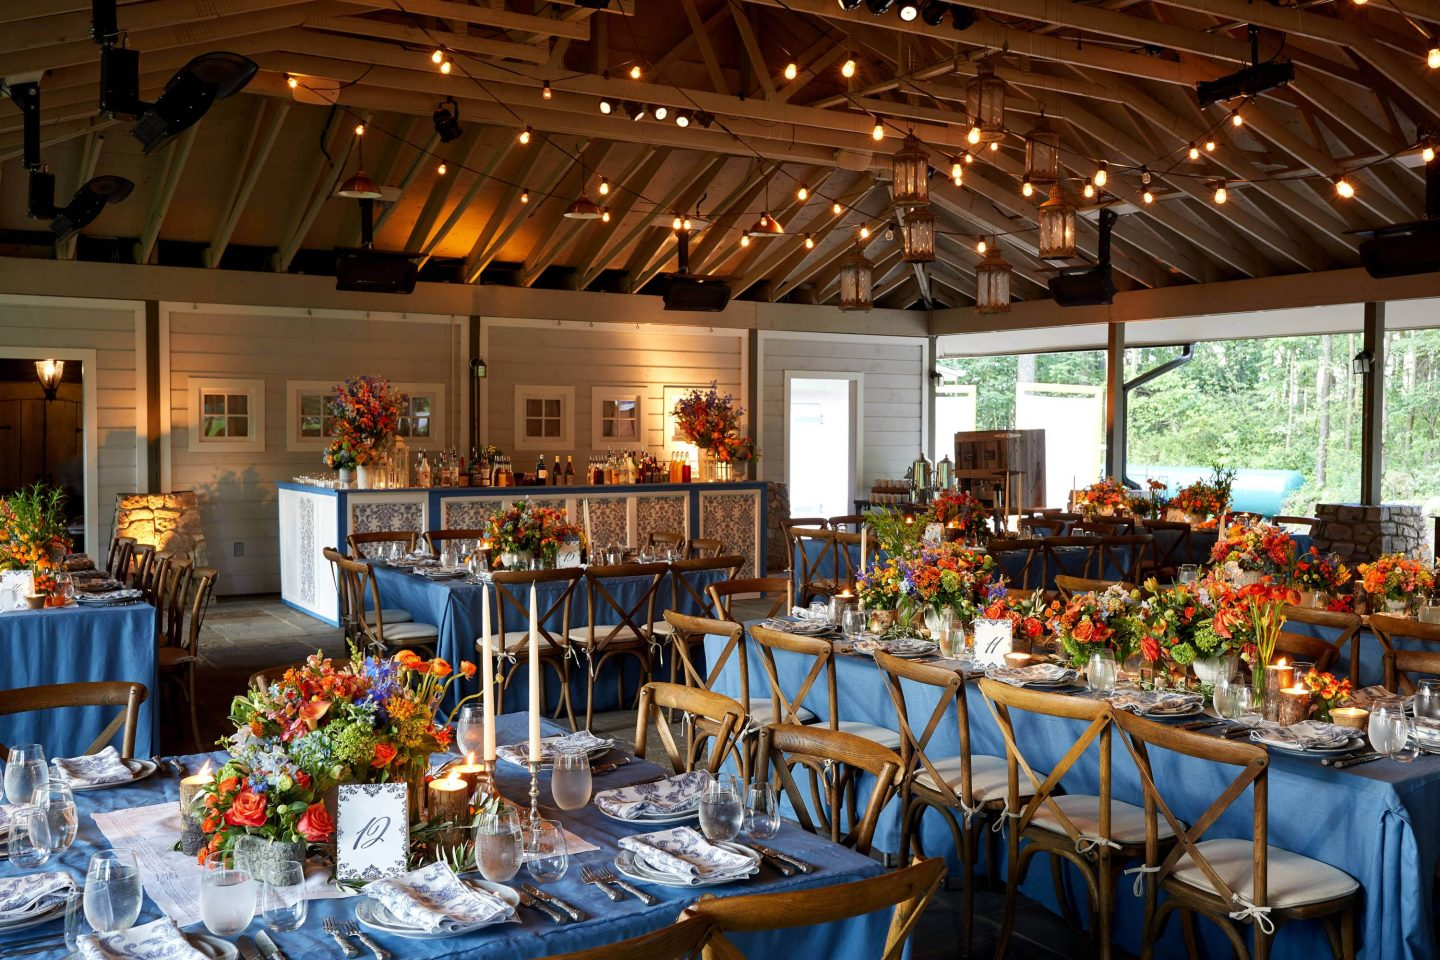 Rustic welcome party decor at this camp-themed wedding weekend at Cedar Lakes Estate in Upstate NY, USA | Photo by Christian Oth Studios